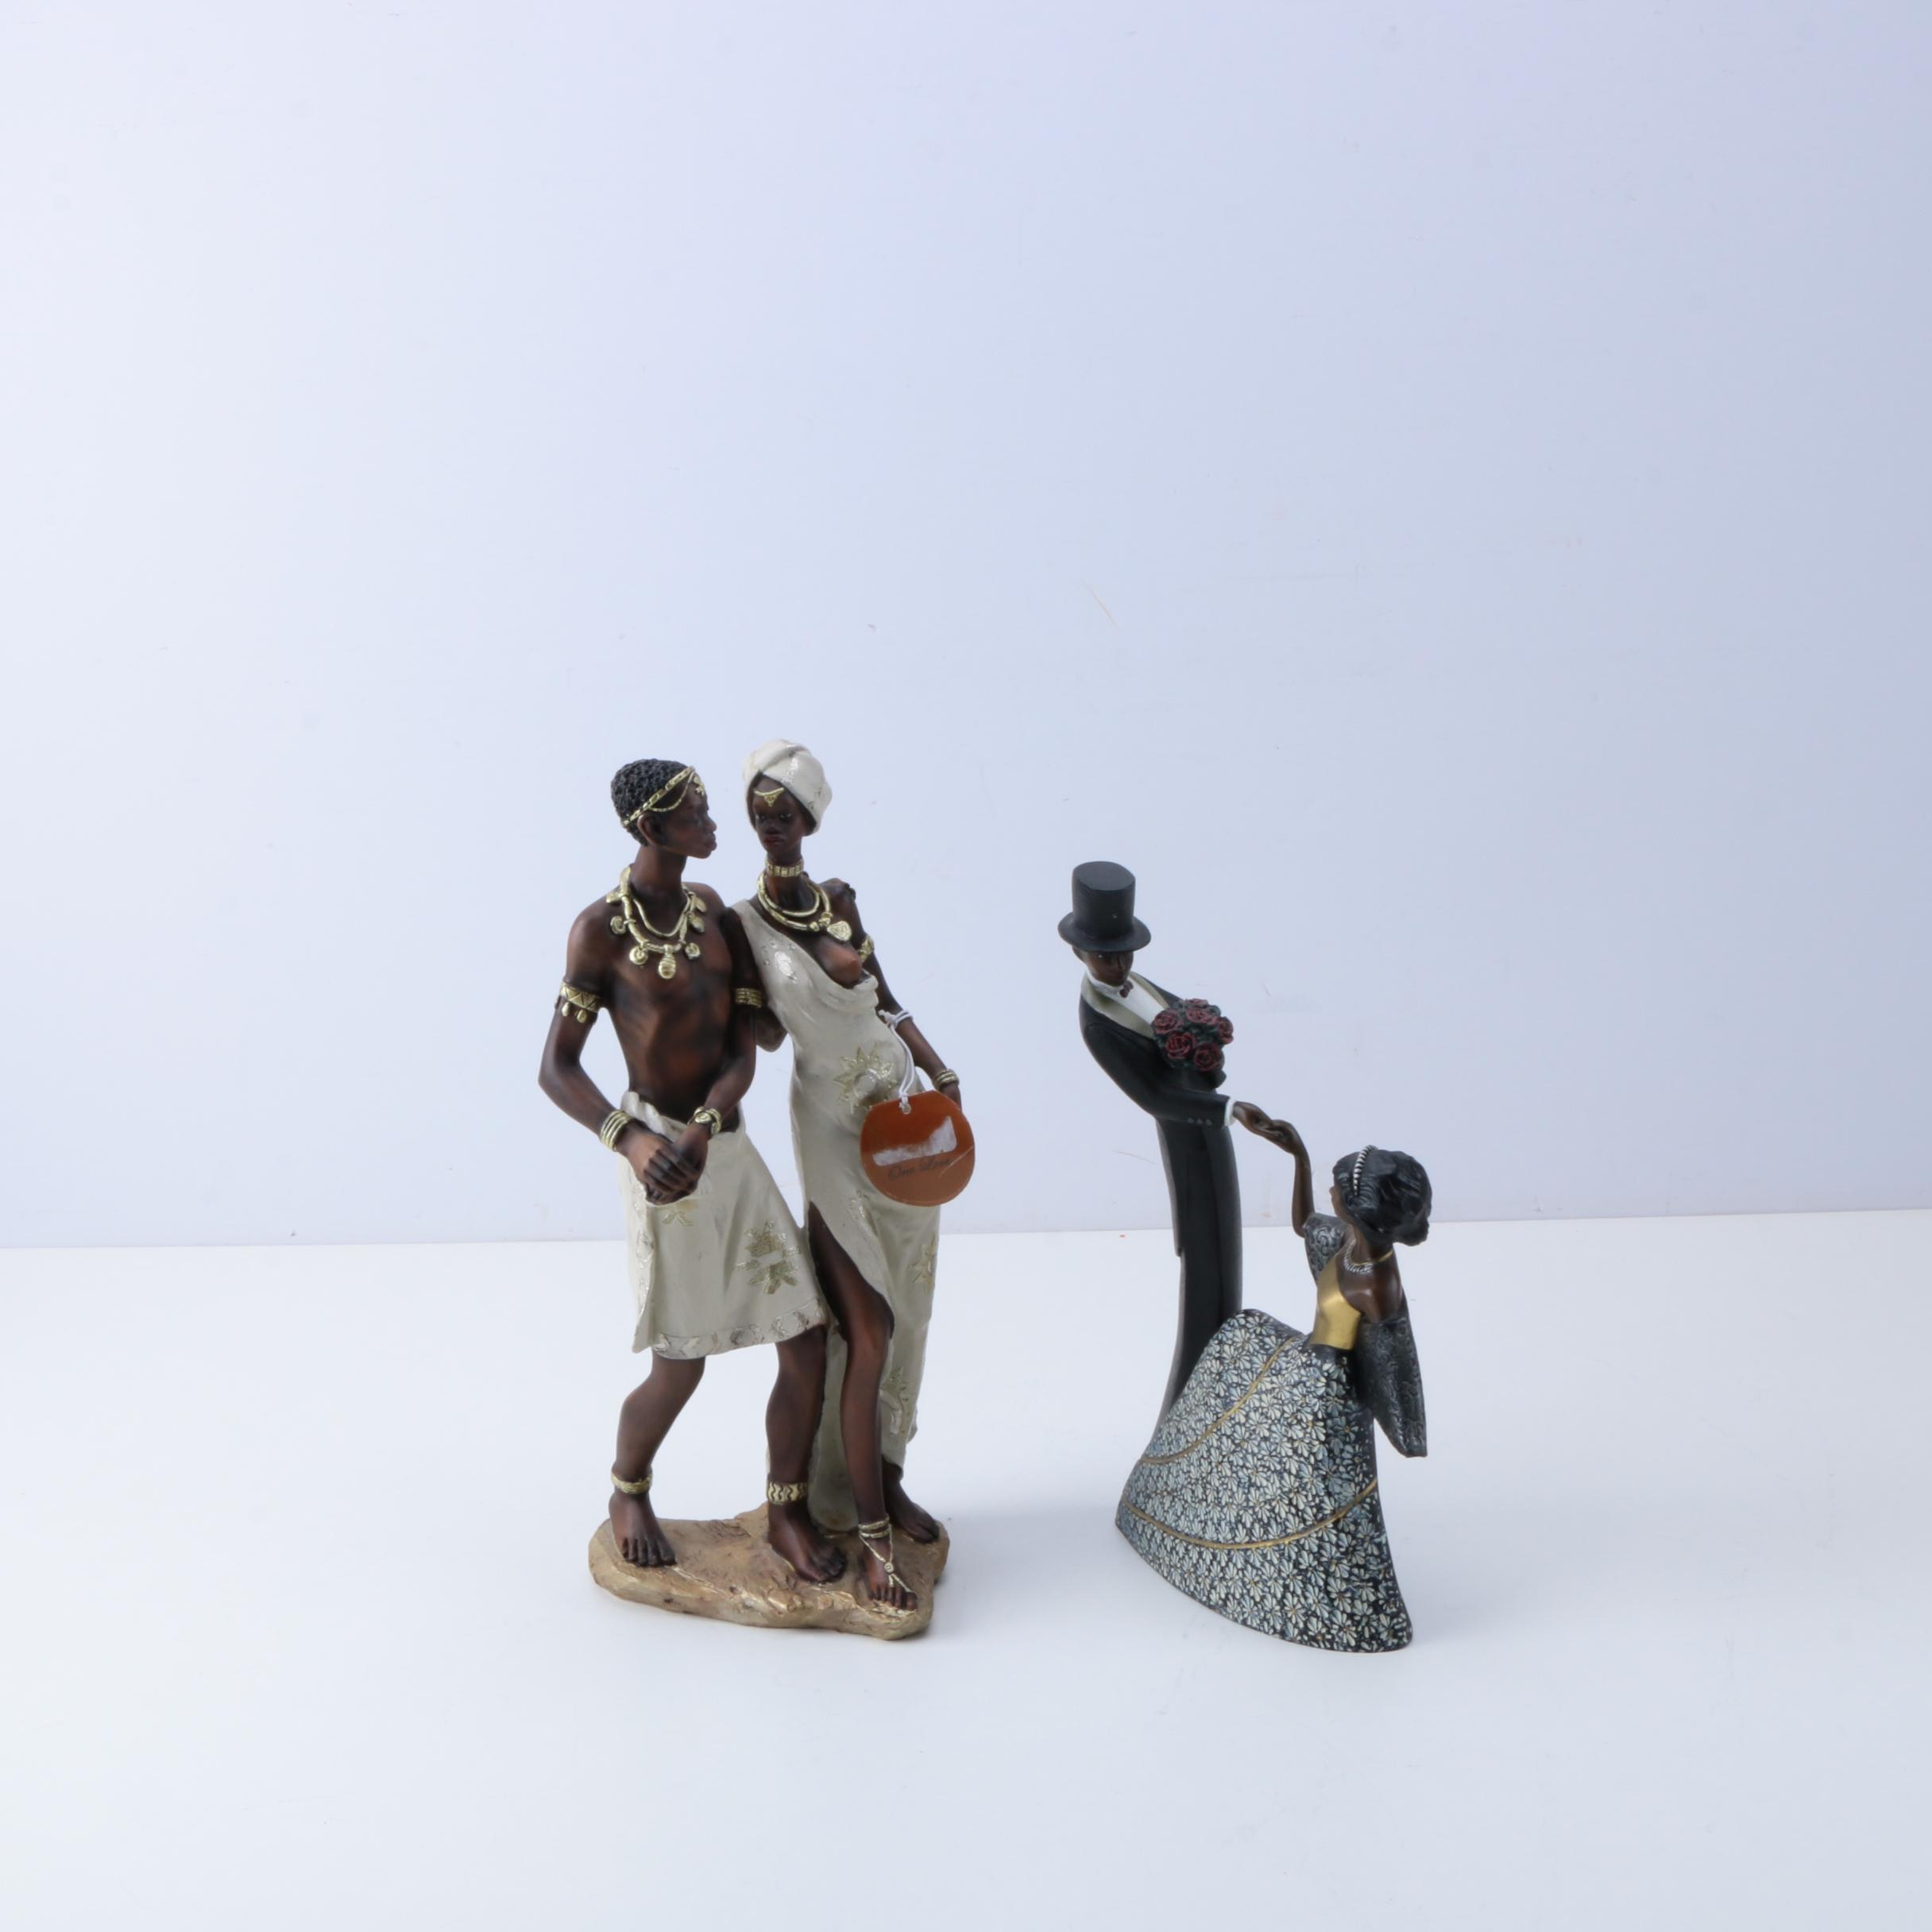 Mahogany Princess and African Inspired Figurines